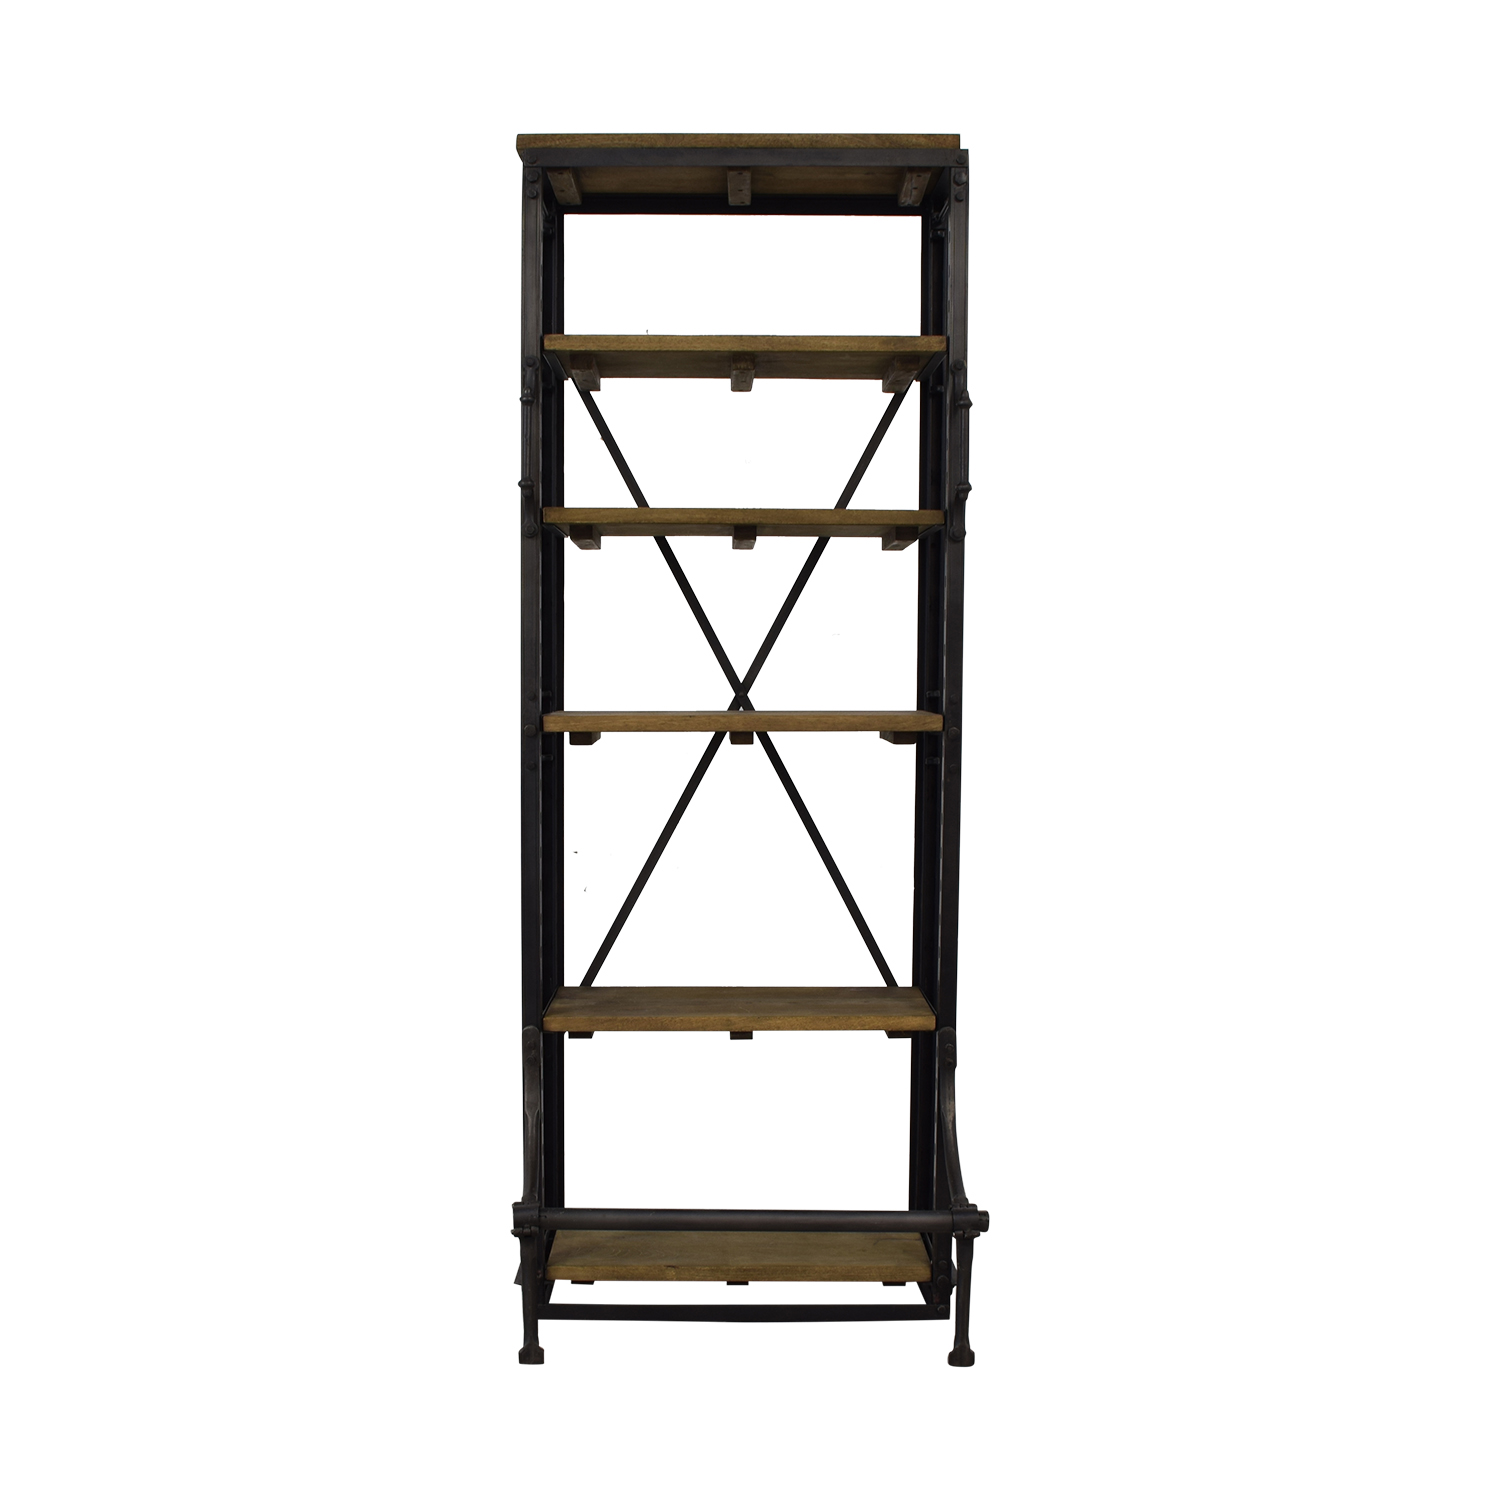 Restoration Hardware French Library Narrow Single Shelving / Bookcases & Shelving